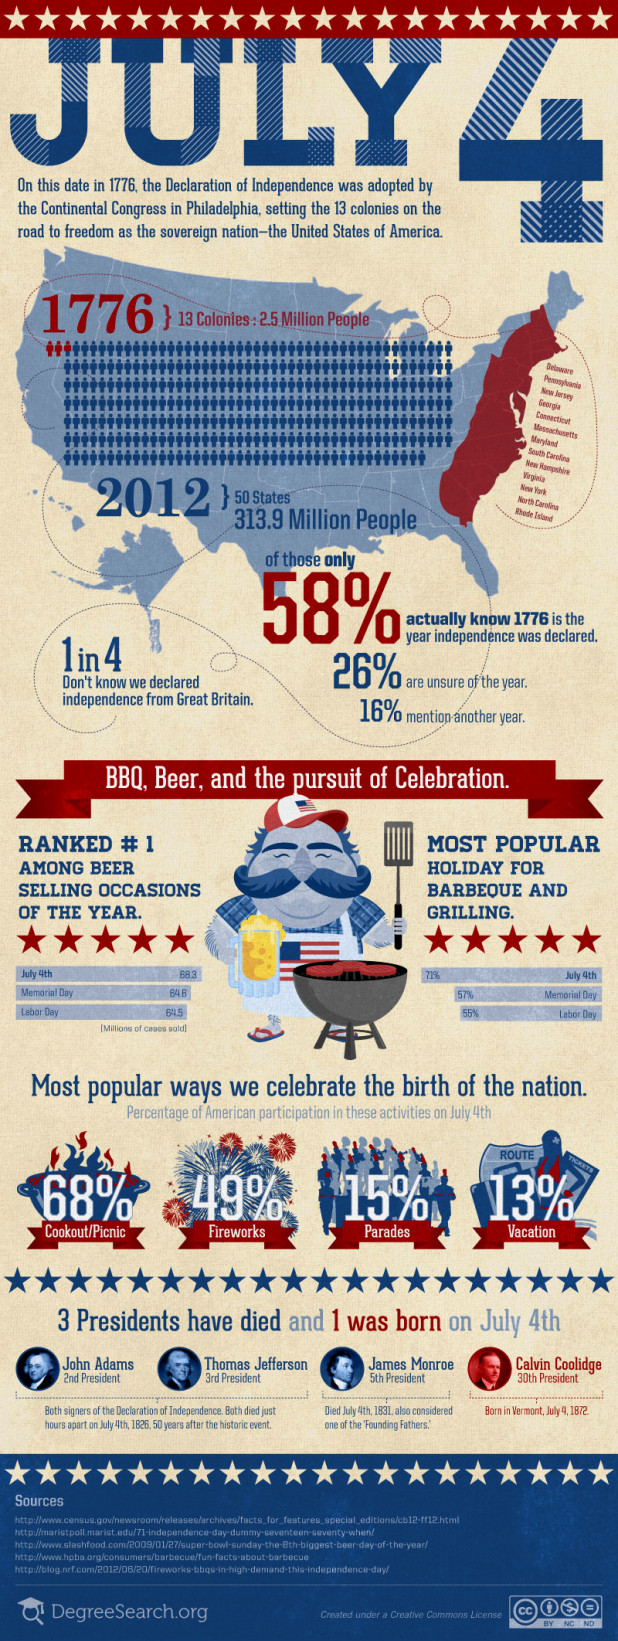 July 4th - BBQ, Beer, and the Pursuit of Celebration